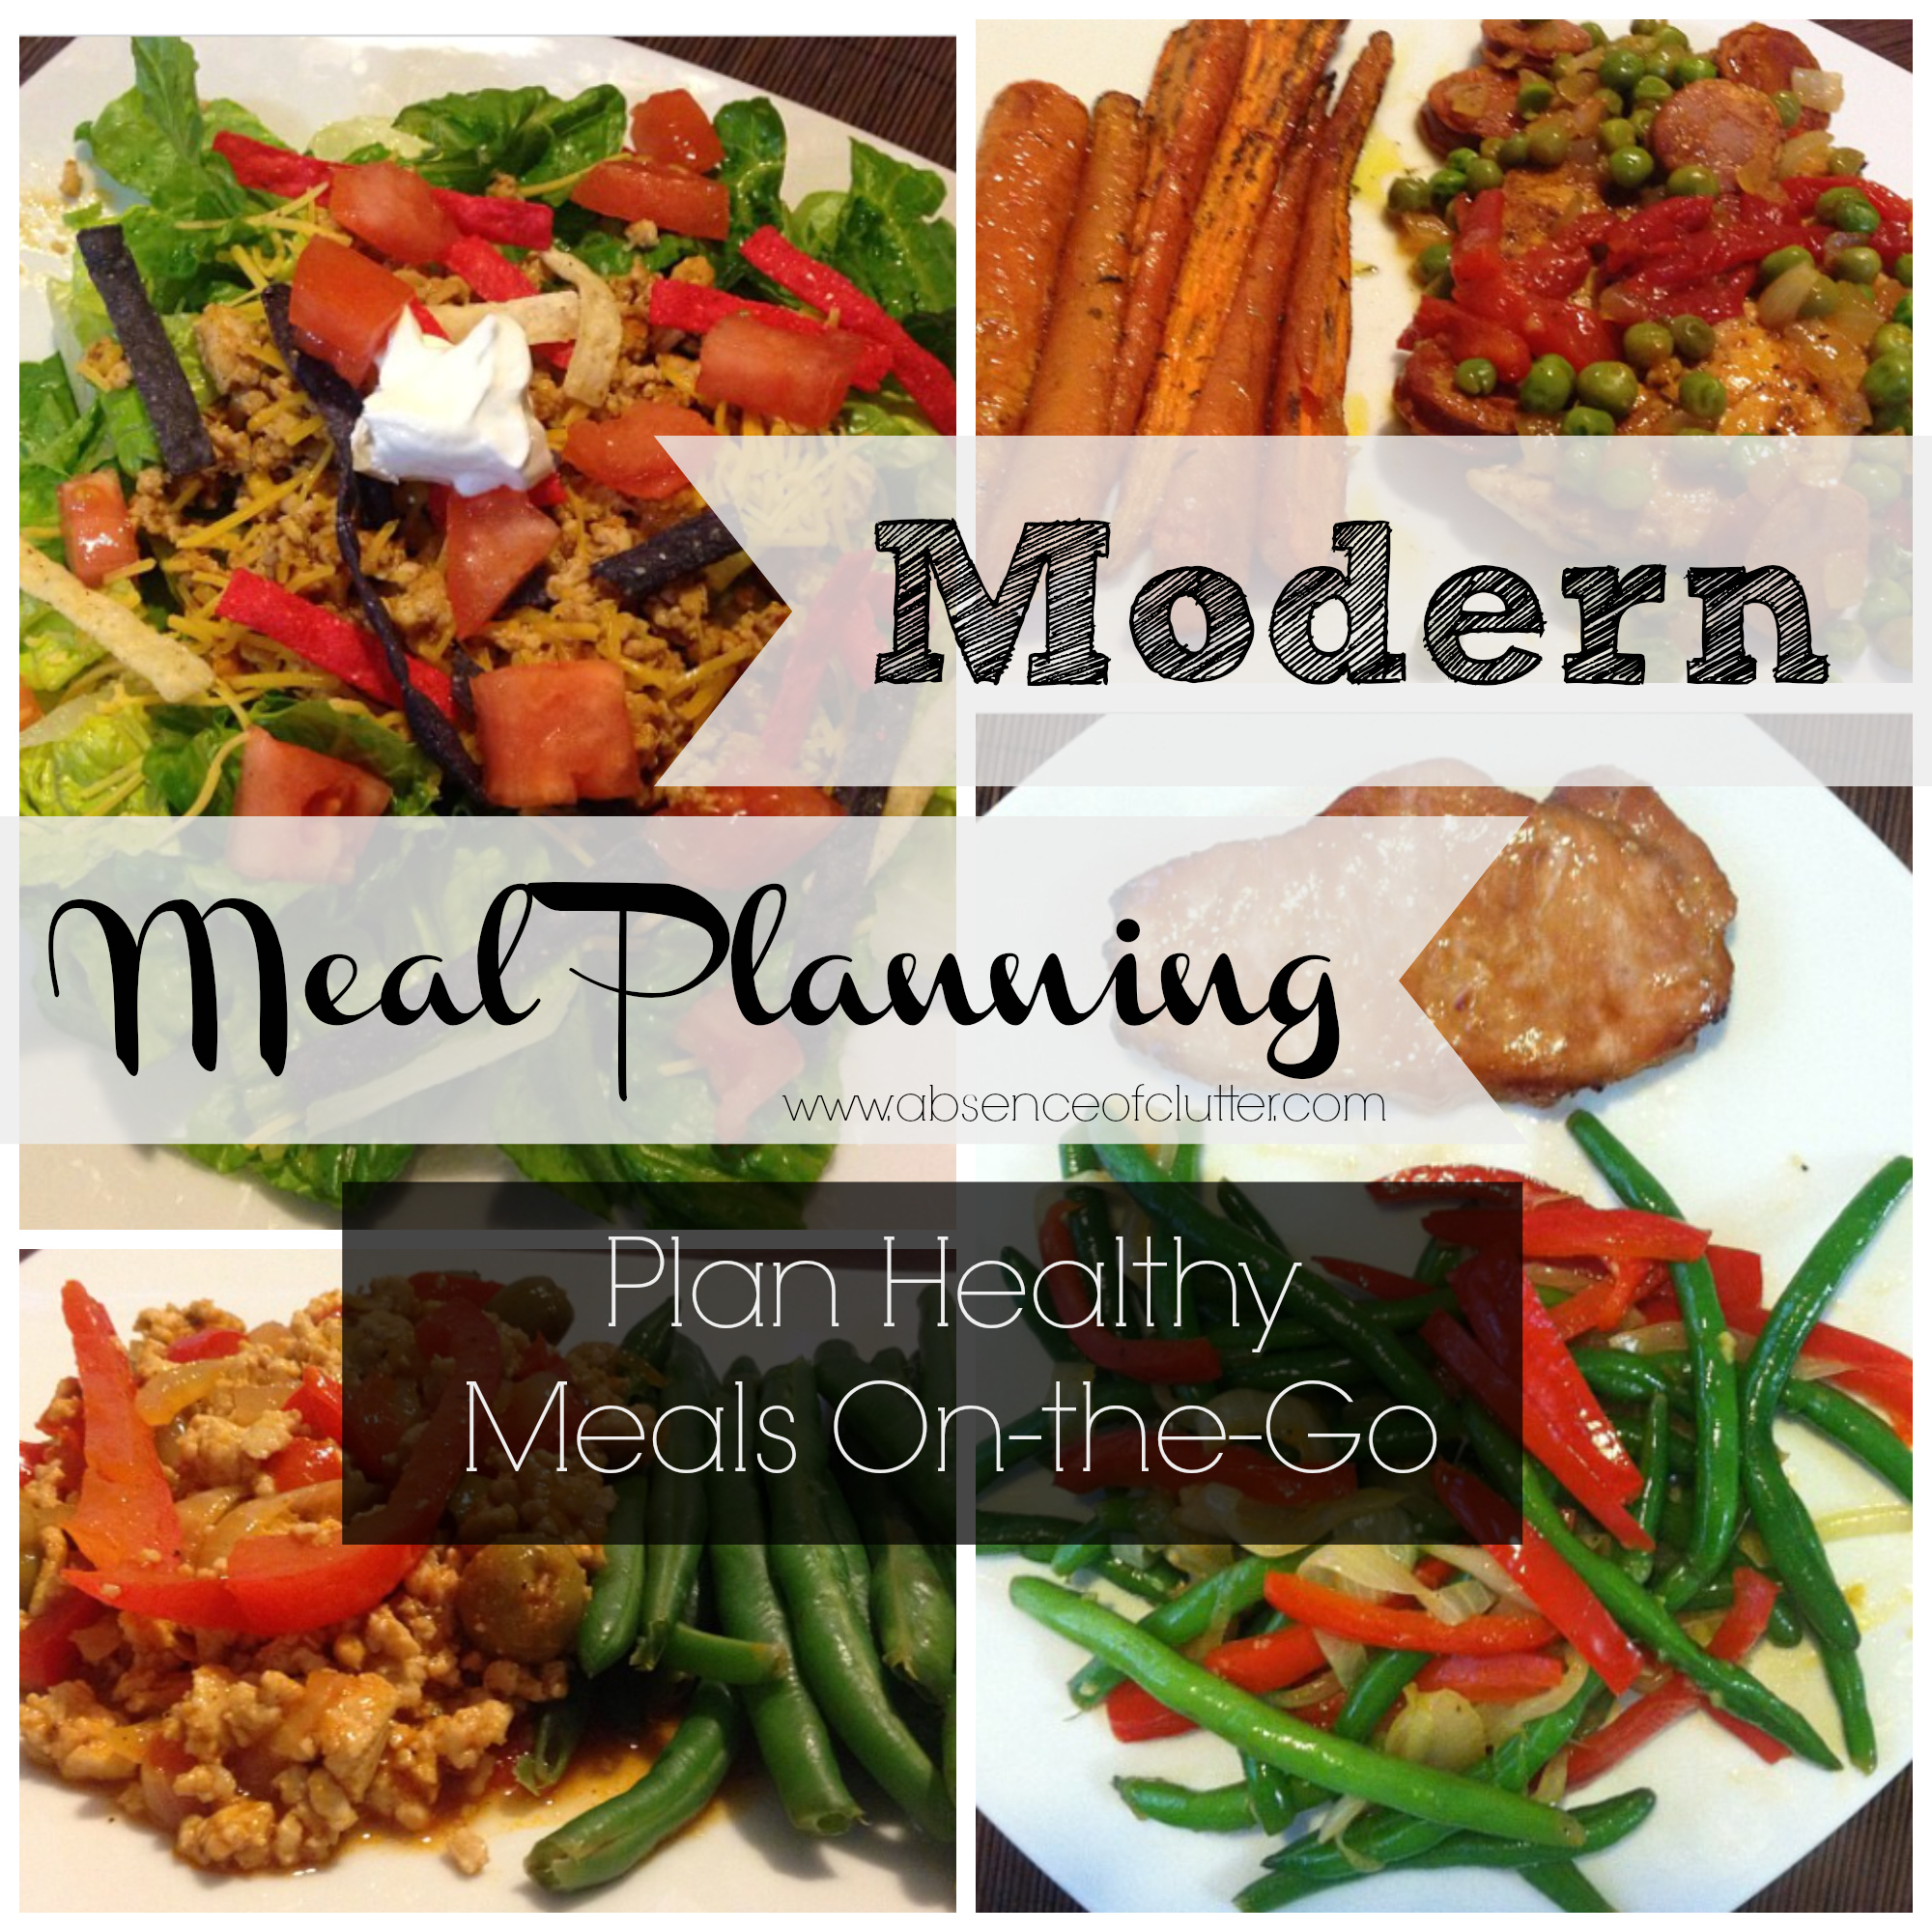 Meal Planning Title